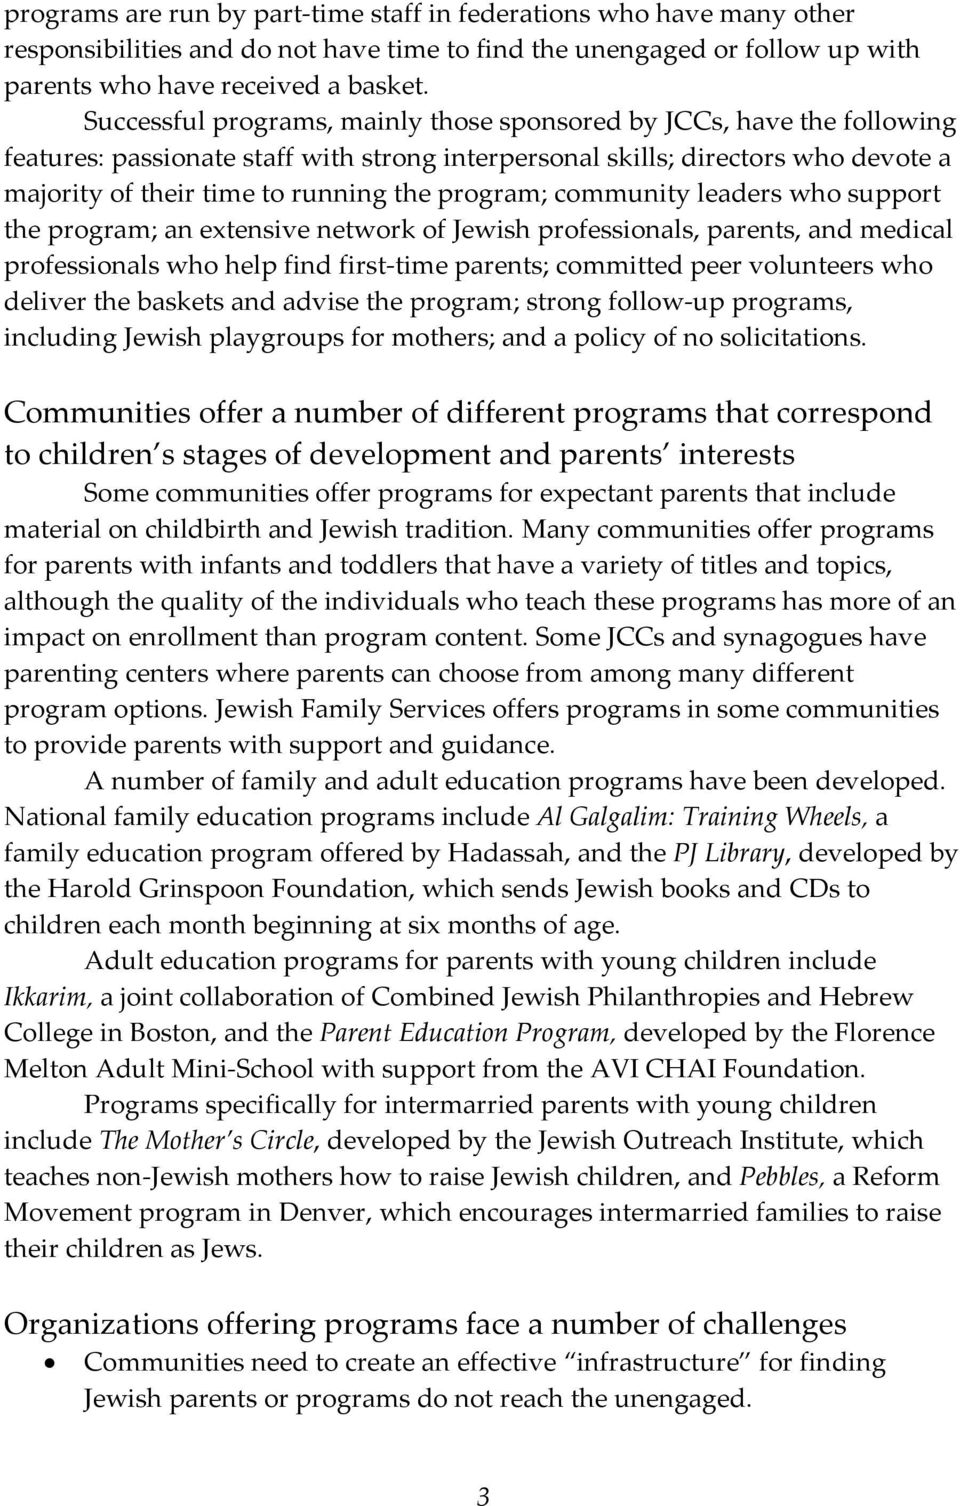 program; community leaders who support the program; an extensive network of Jewish professionals, parents, and medical professionals who help find first time parents; committed peer volunteers who